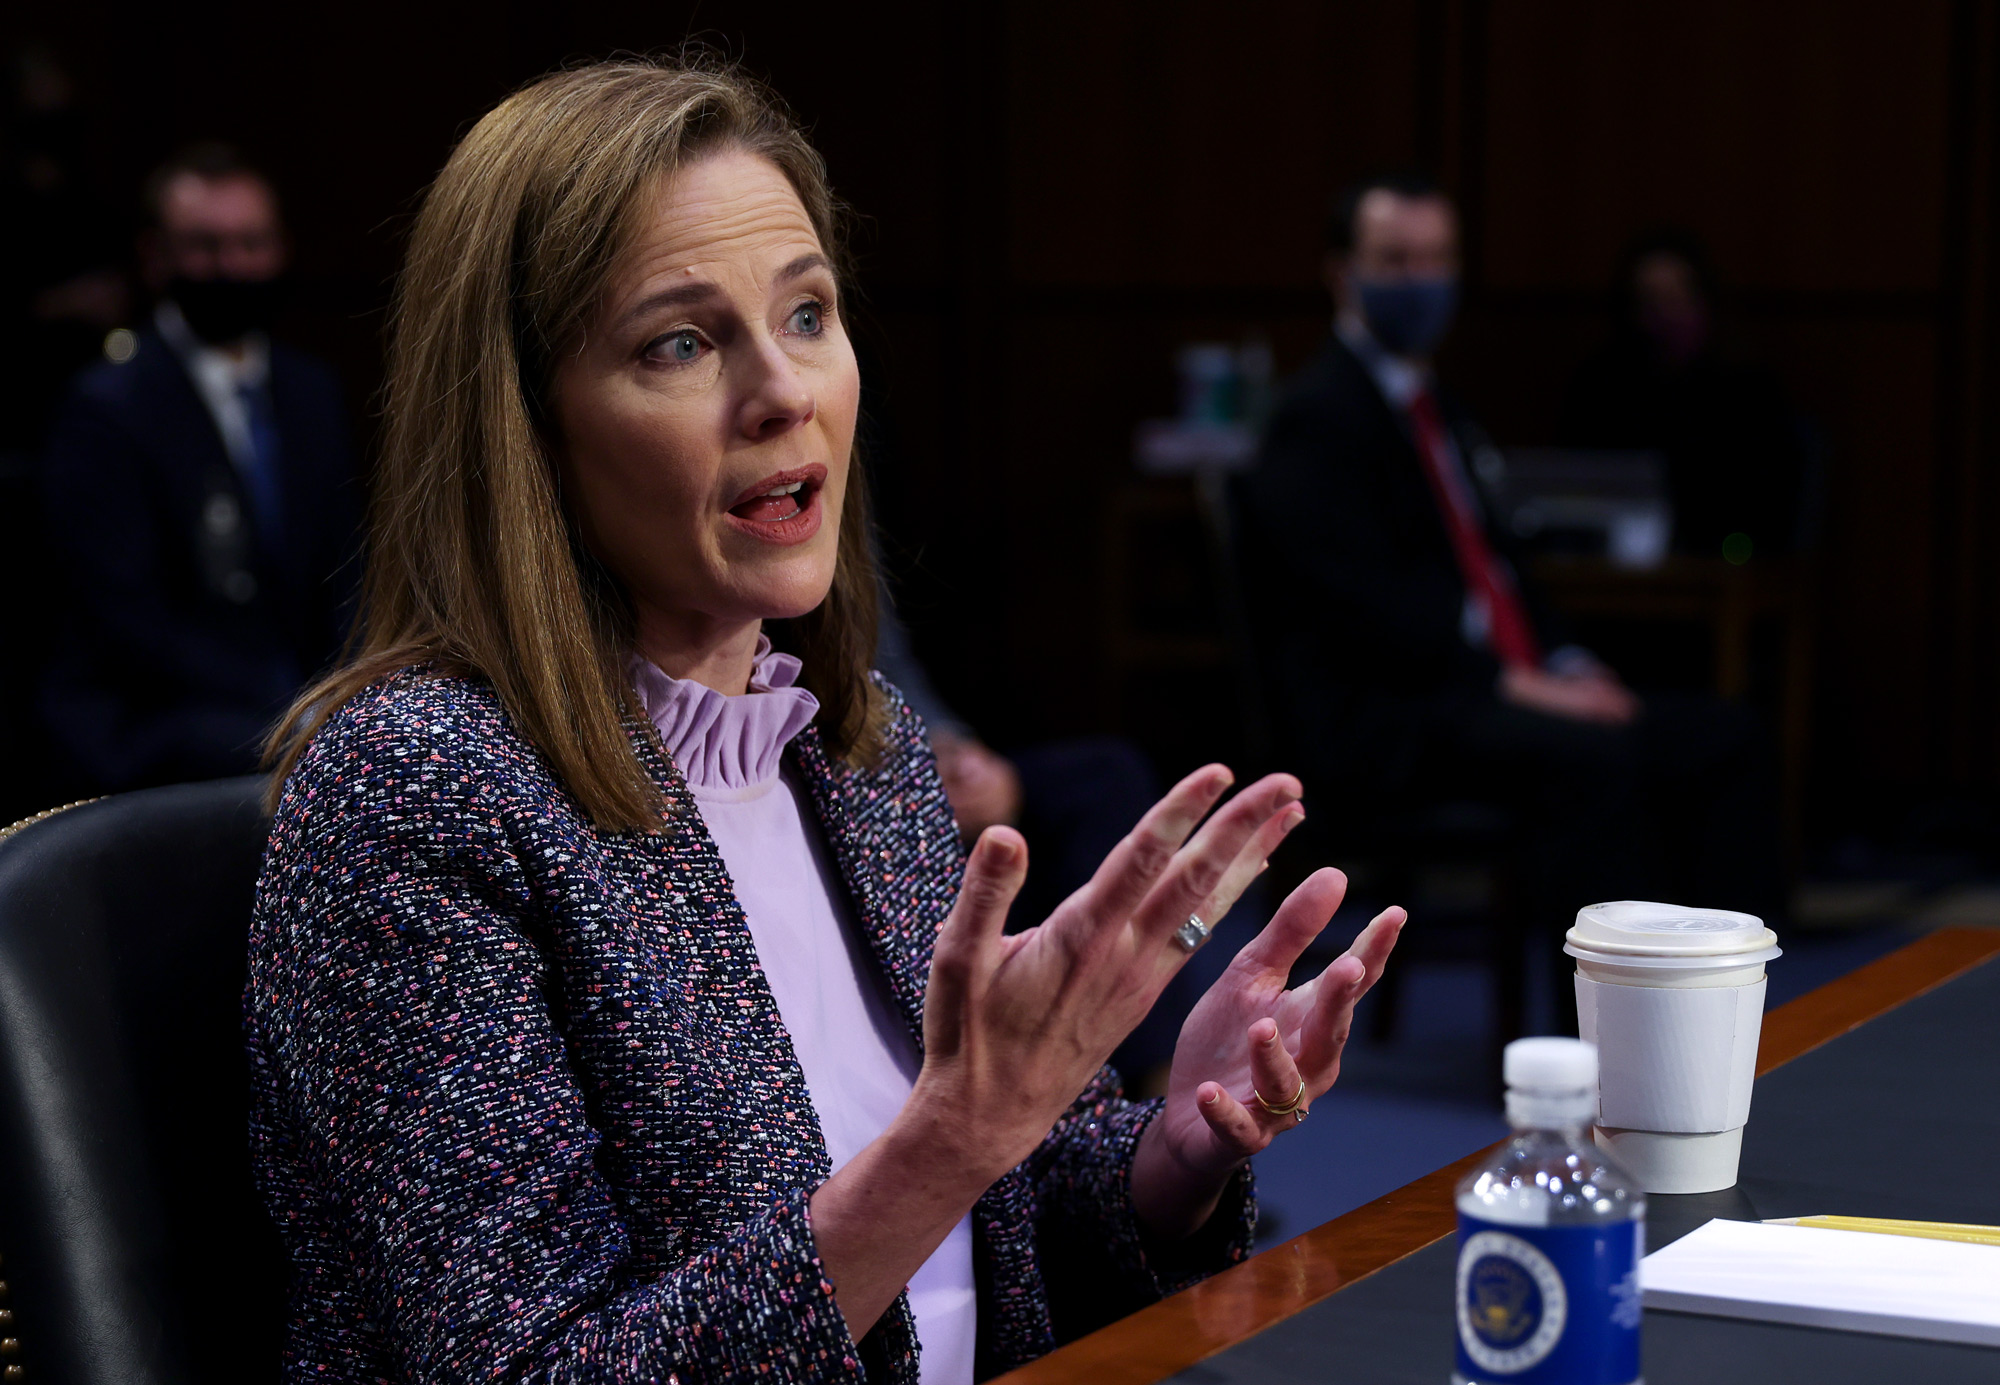 Supreme Court nominee Judge Amy Coney Barrett testifies before the Senate Judiciary Committee on the third day of her Supreme Court confirmation hearing on Capitol Hill on October 14 in Washington, DC.